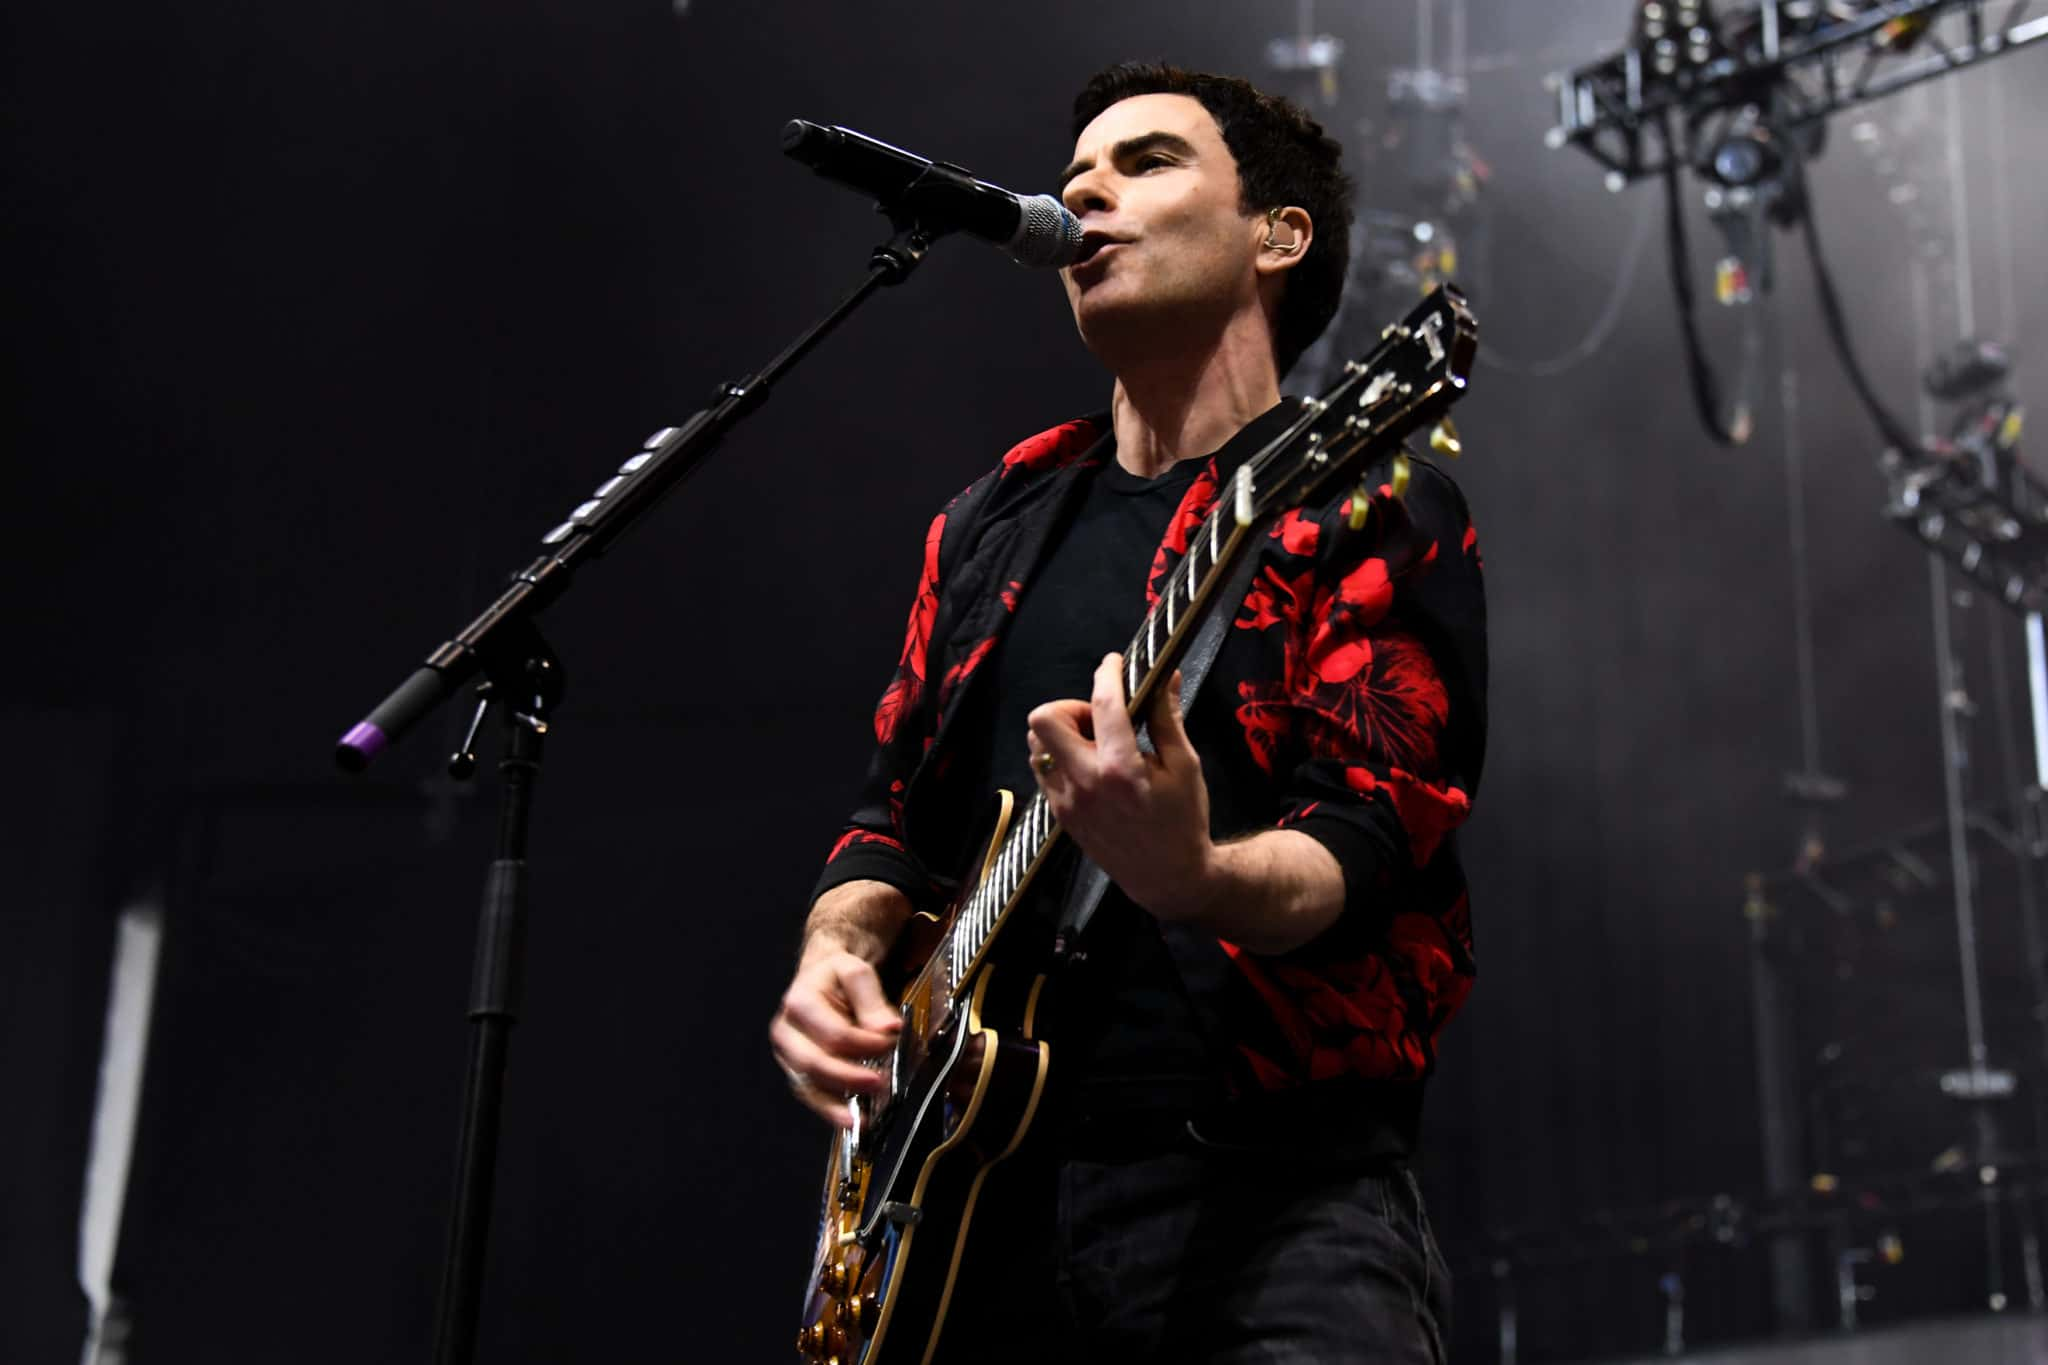 Kelly Jones of Welsh rock band Stereophonics performs on stage at the O2 Arena in London on March 6, 2020.